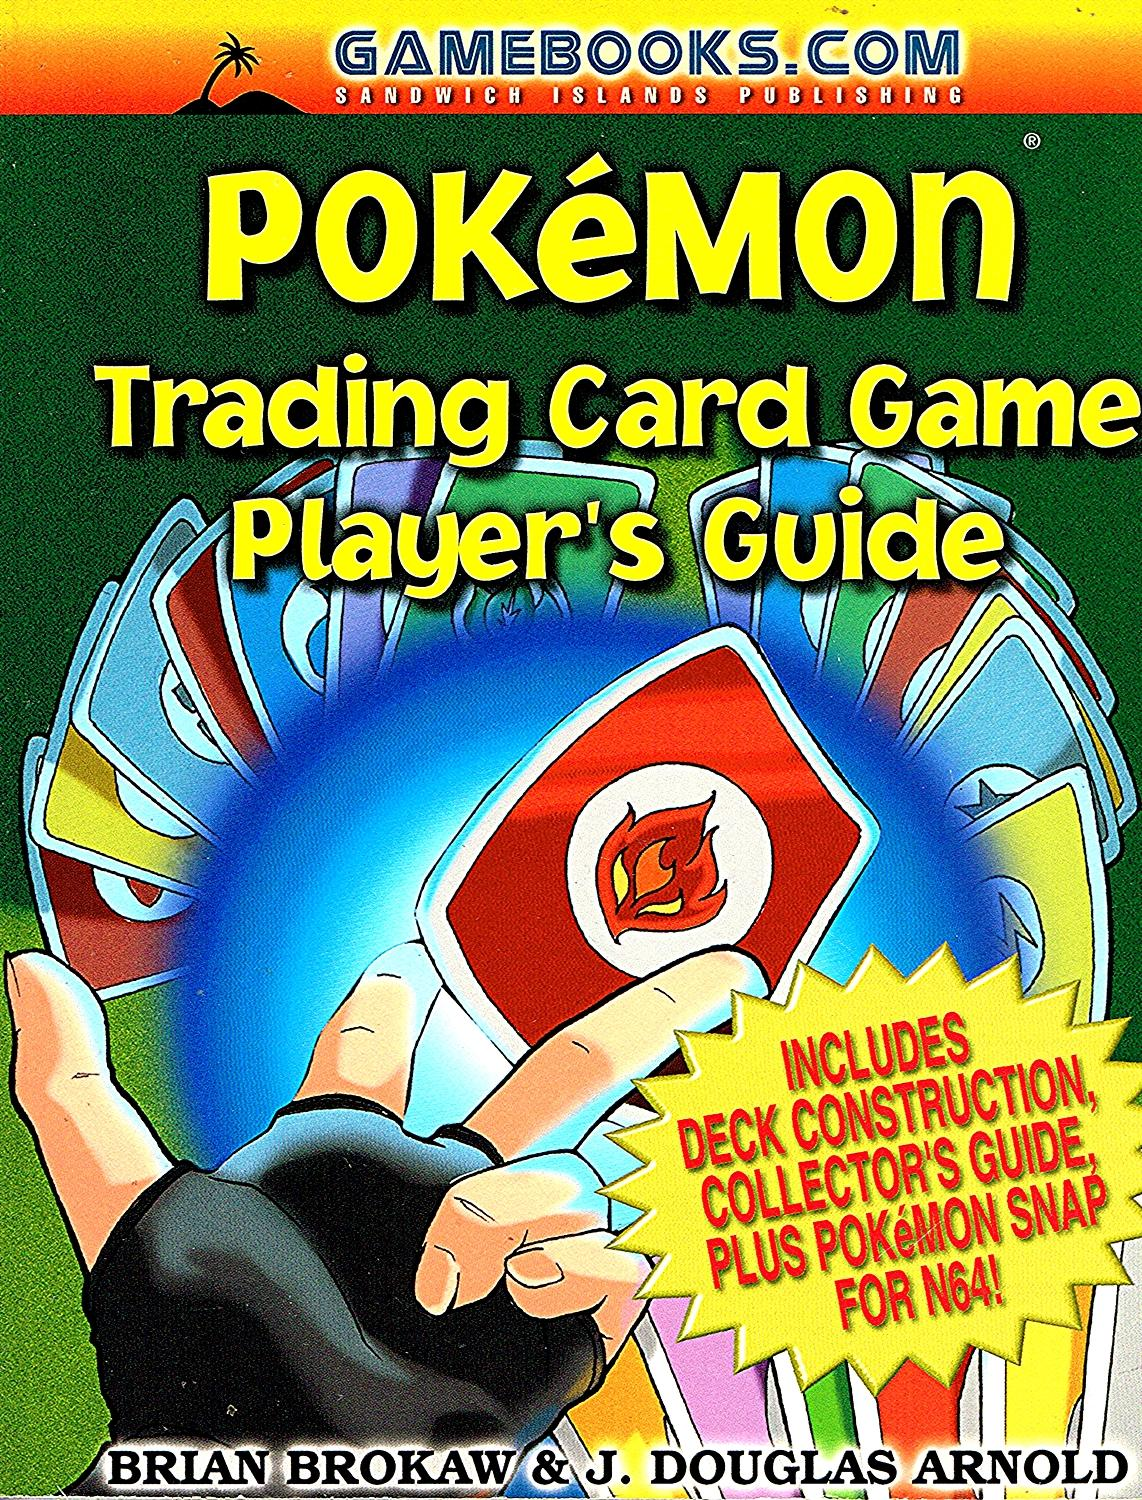 pokemon trading card game player s guide by brian brokaw j